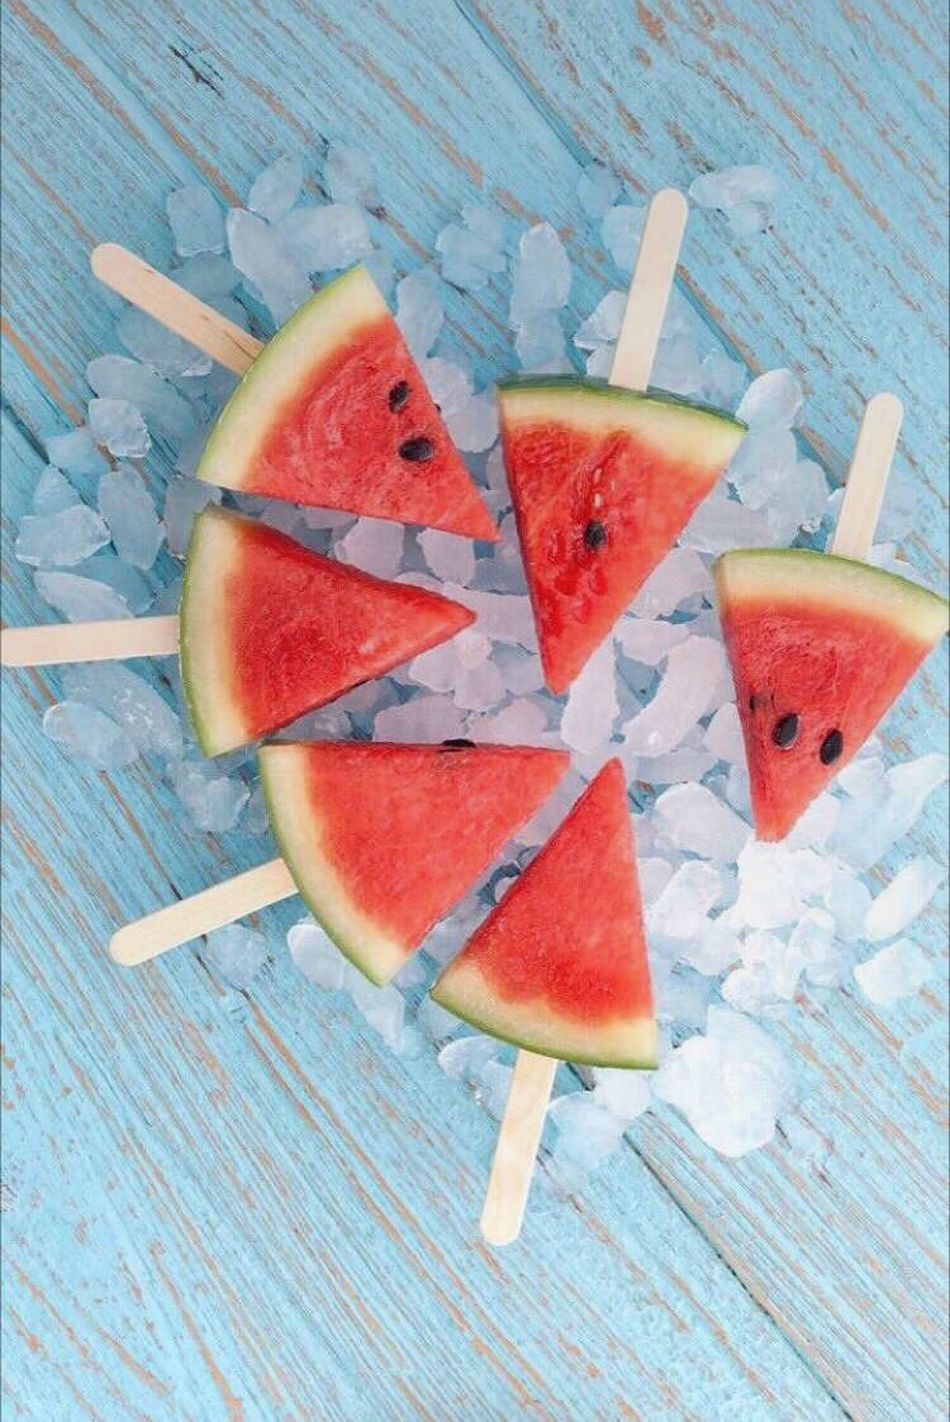 Frozen Food Flavored Ice Ice Cream Refreshment Food And Drink Fruit Cold Temperature Sweet Food Frozen Summer High Angle View Still Life Homemade Freshness No People SLICE Watermelon Drink Wood - Material Indoors